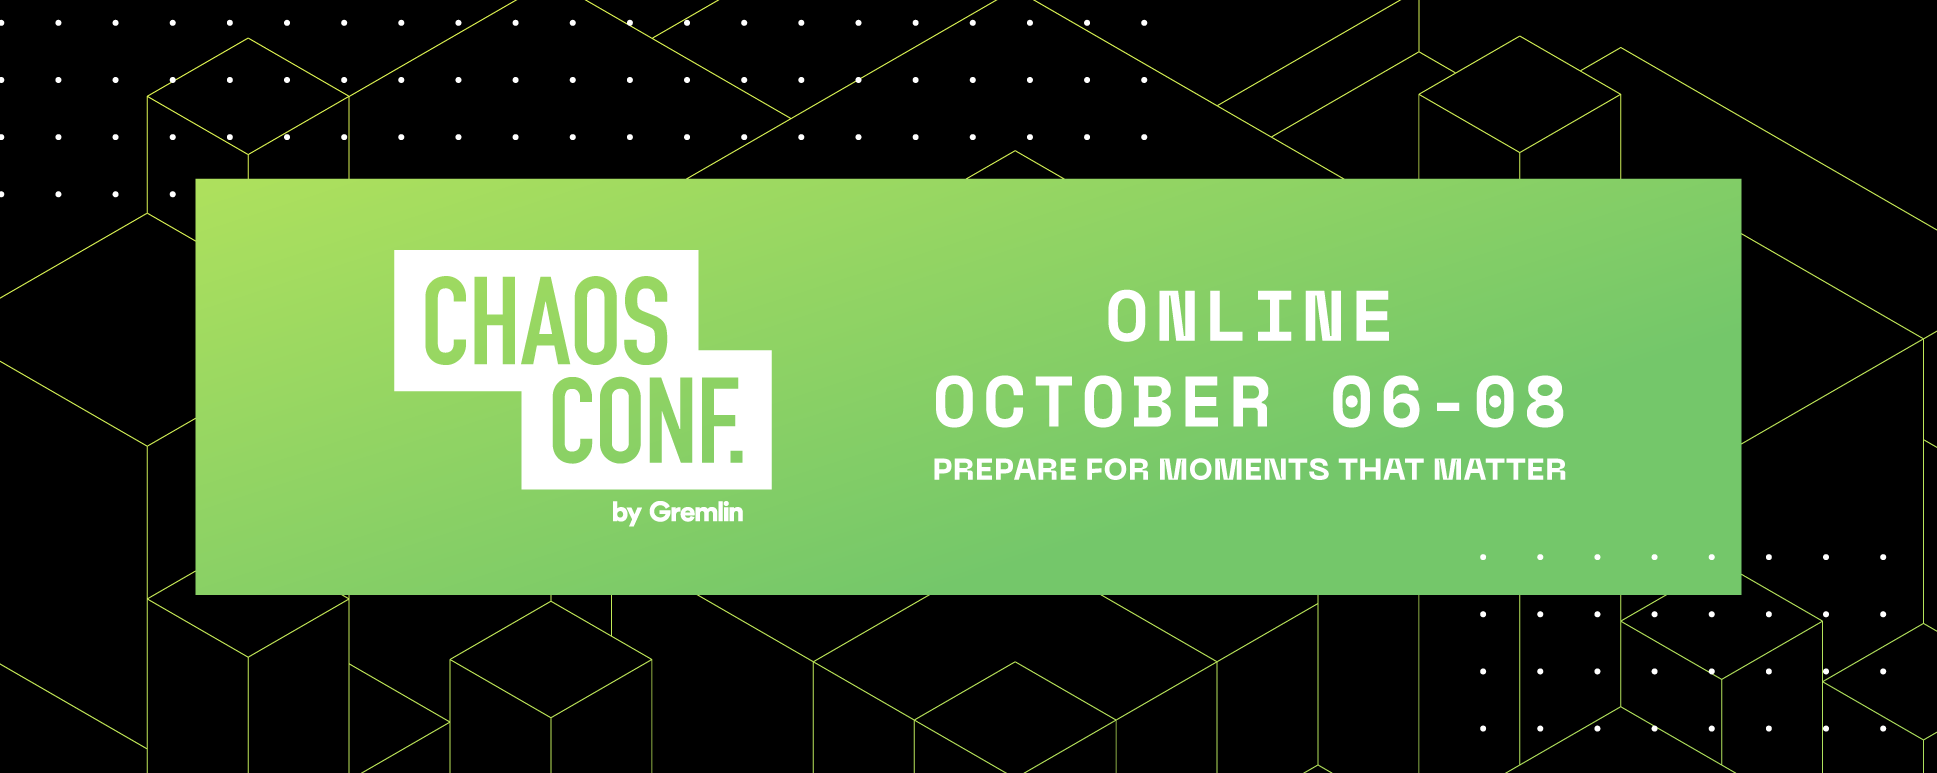 Announcing Chaos Conf 2020 (Online): Be Prepared For Moments That Matter